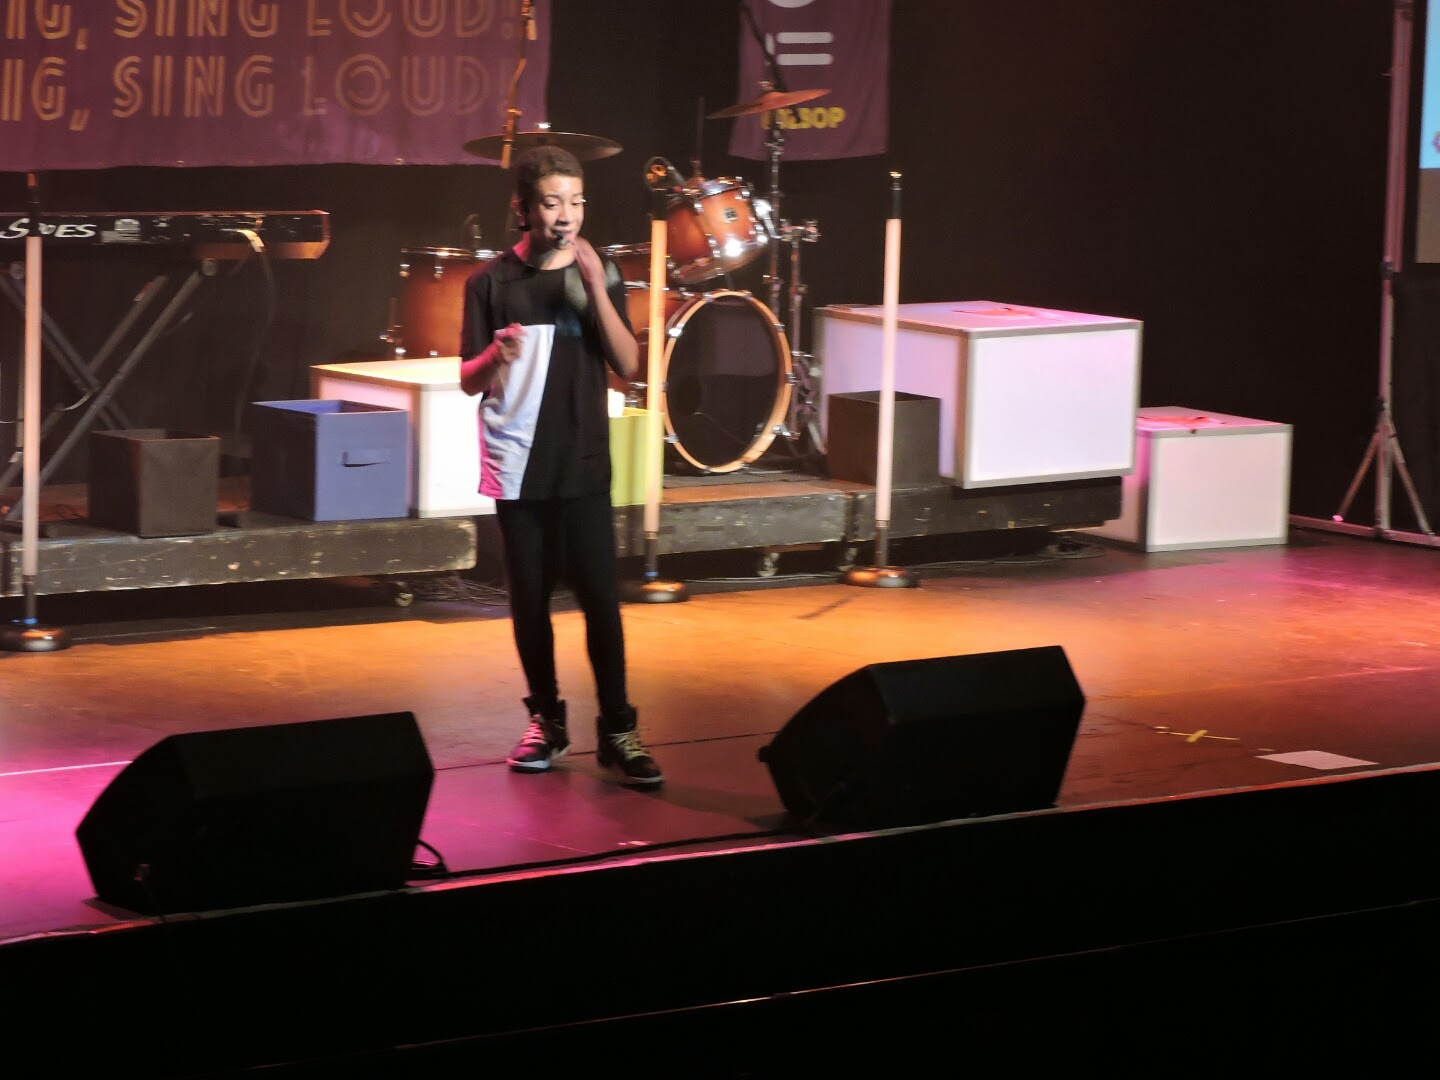 Kidz Bop Kids Concert Recap Review #DreamBigSingLoud via www.productreviewmom.com